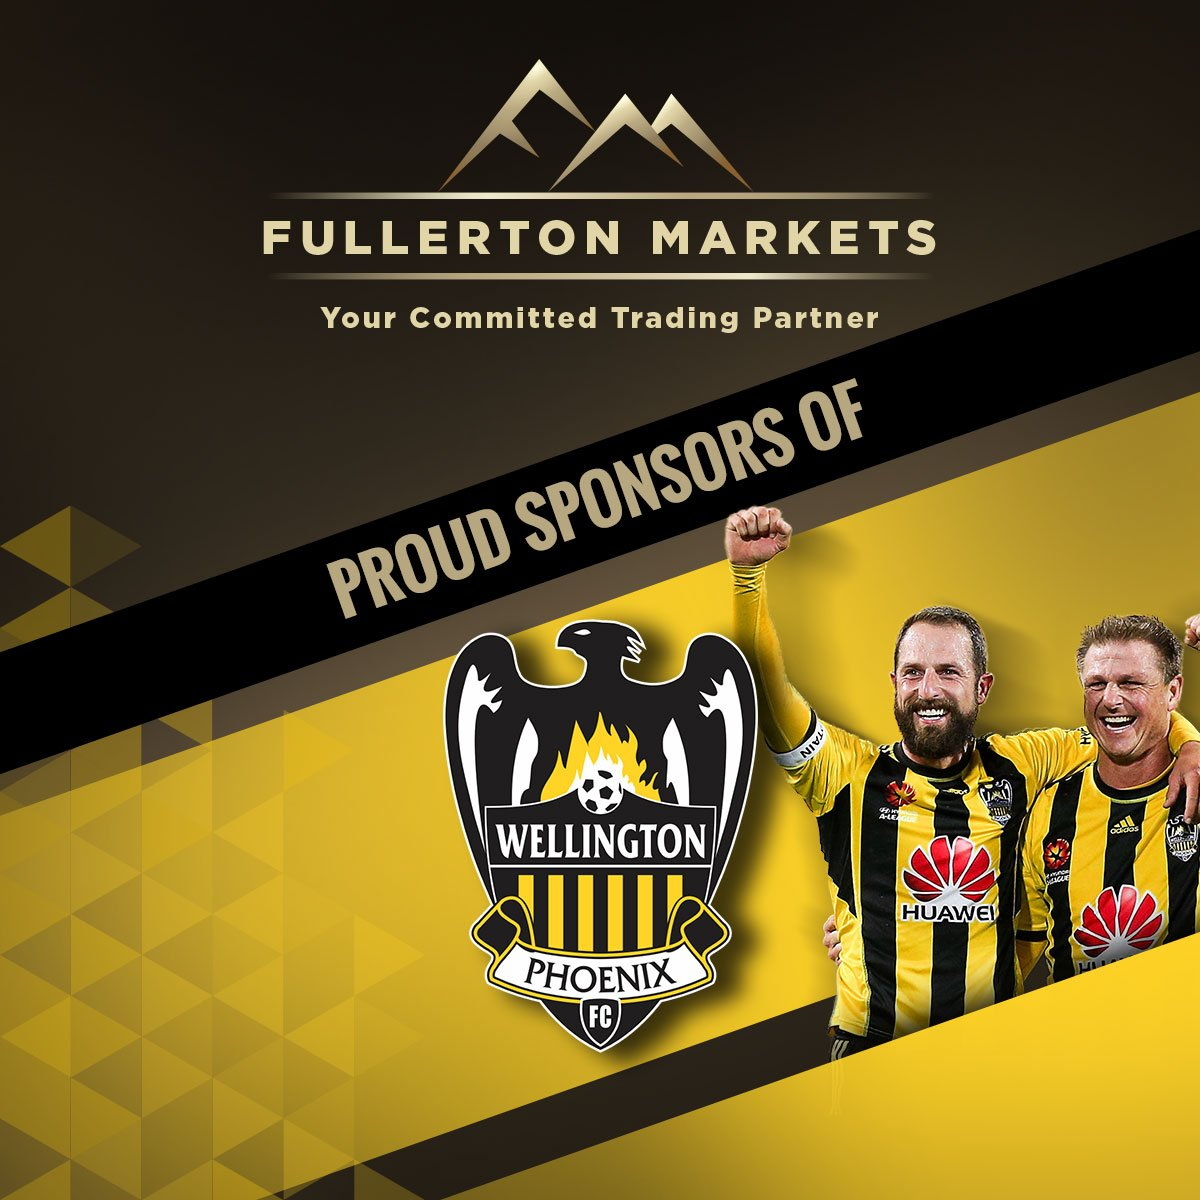 Proud Sponsors of Wellington Phoenix Football Club